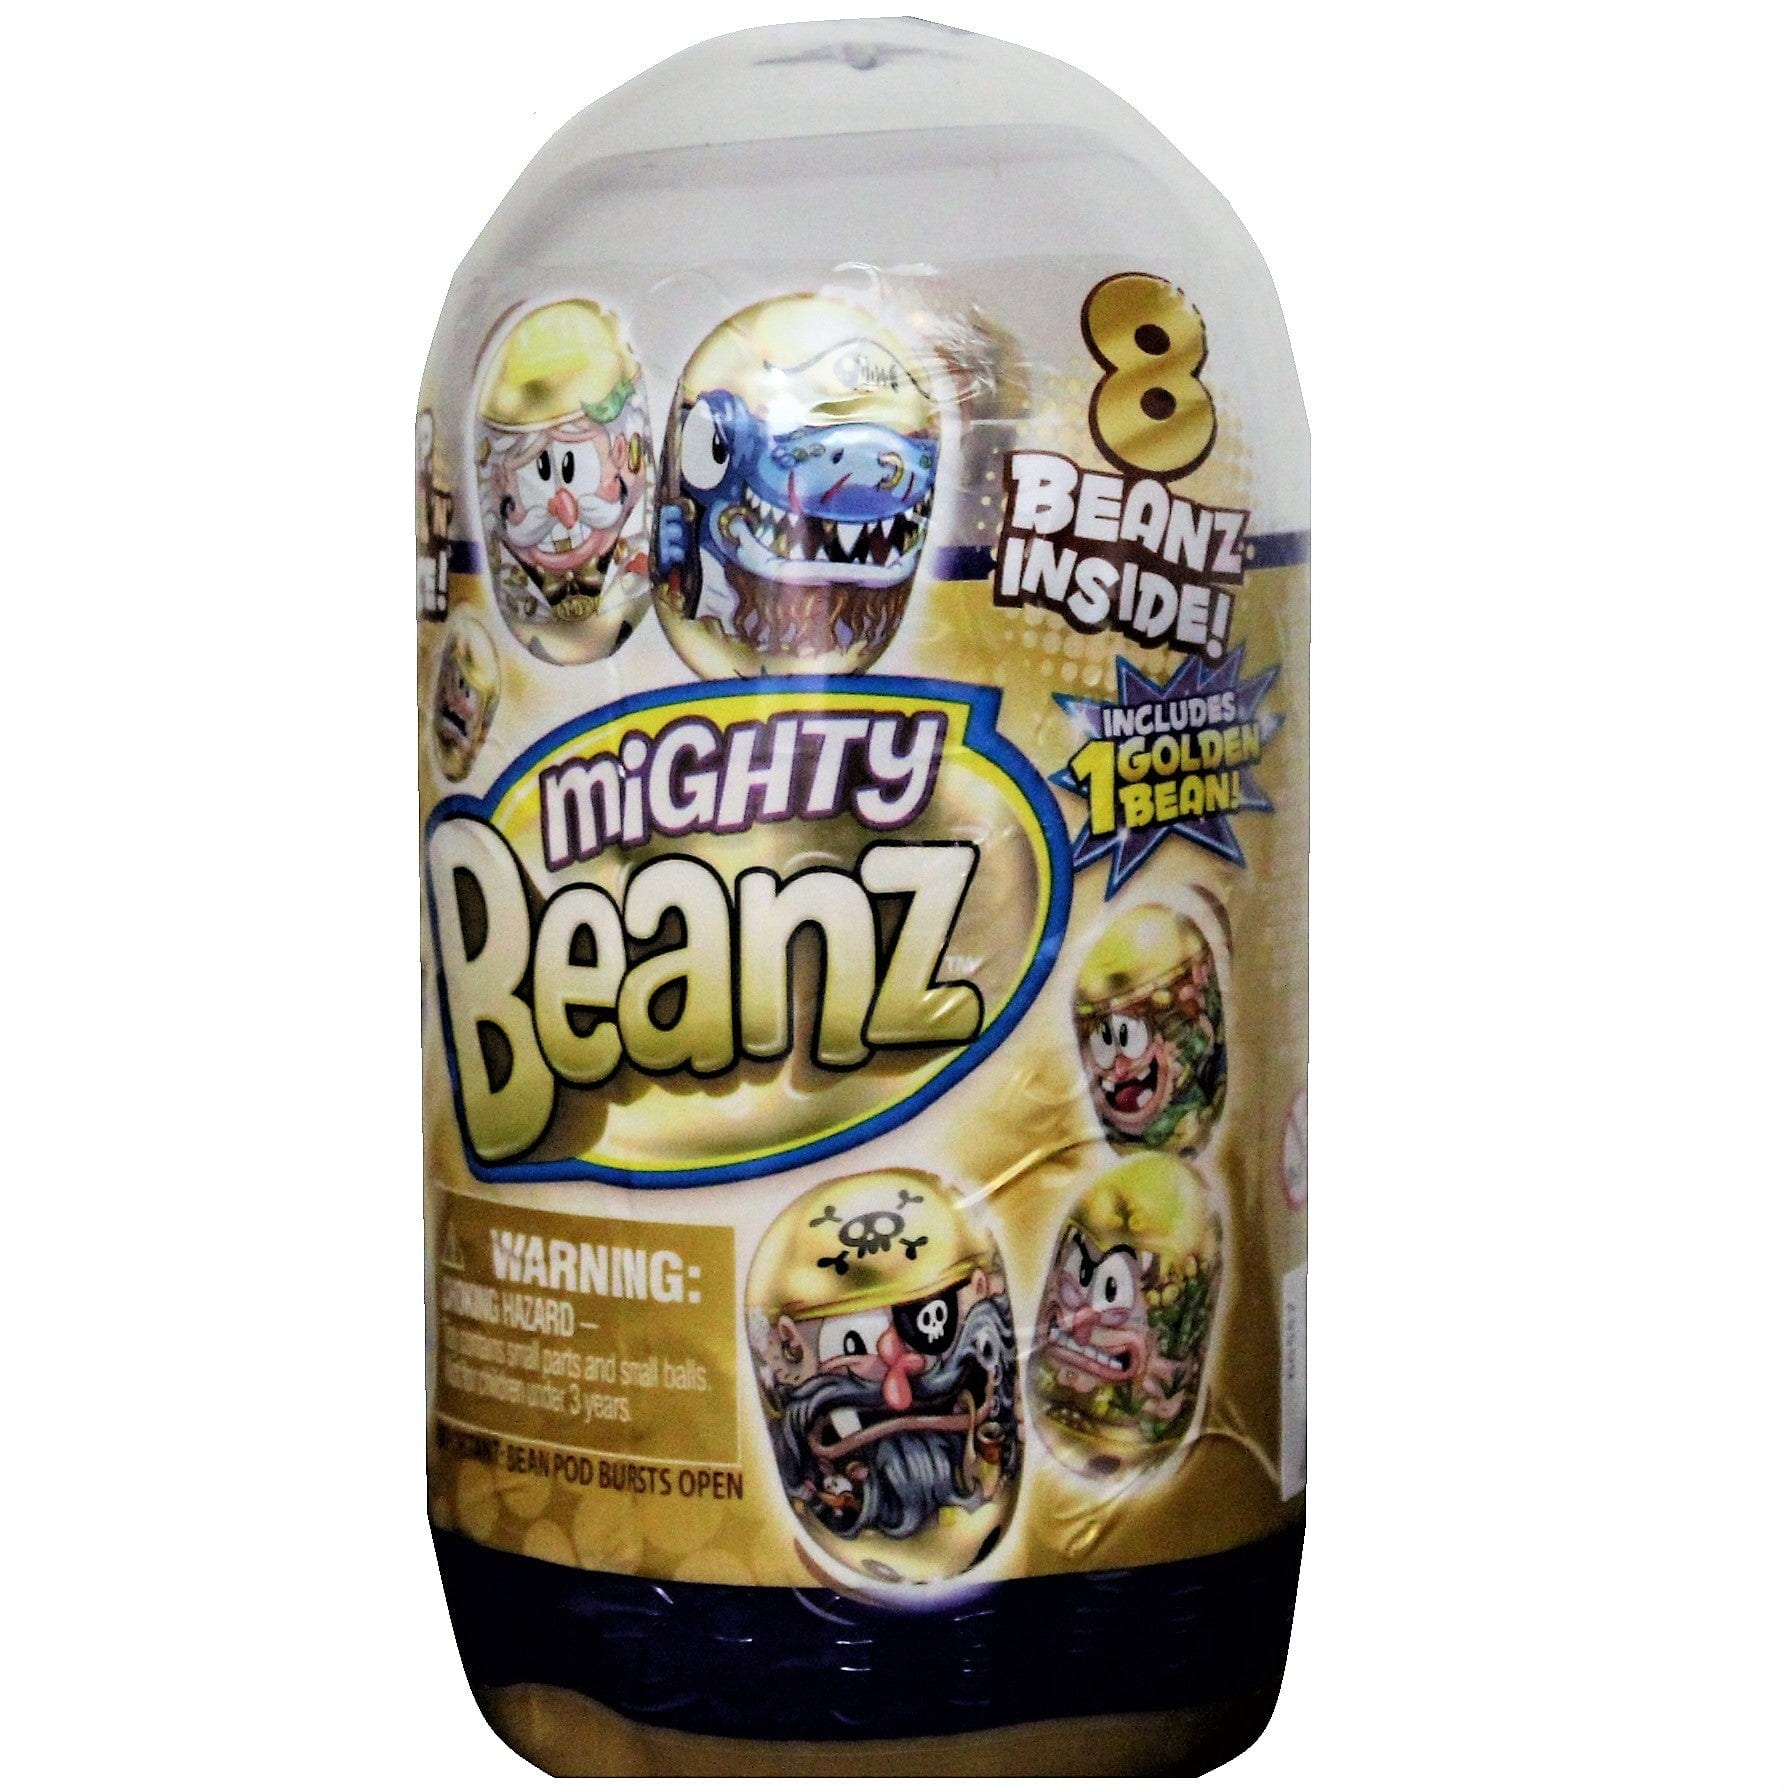 Mighty Beanz Golden Slam Pack - Includes 1 Golden Bean from the Golden Pirate series!